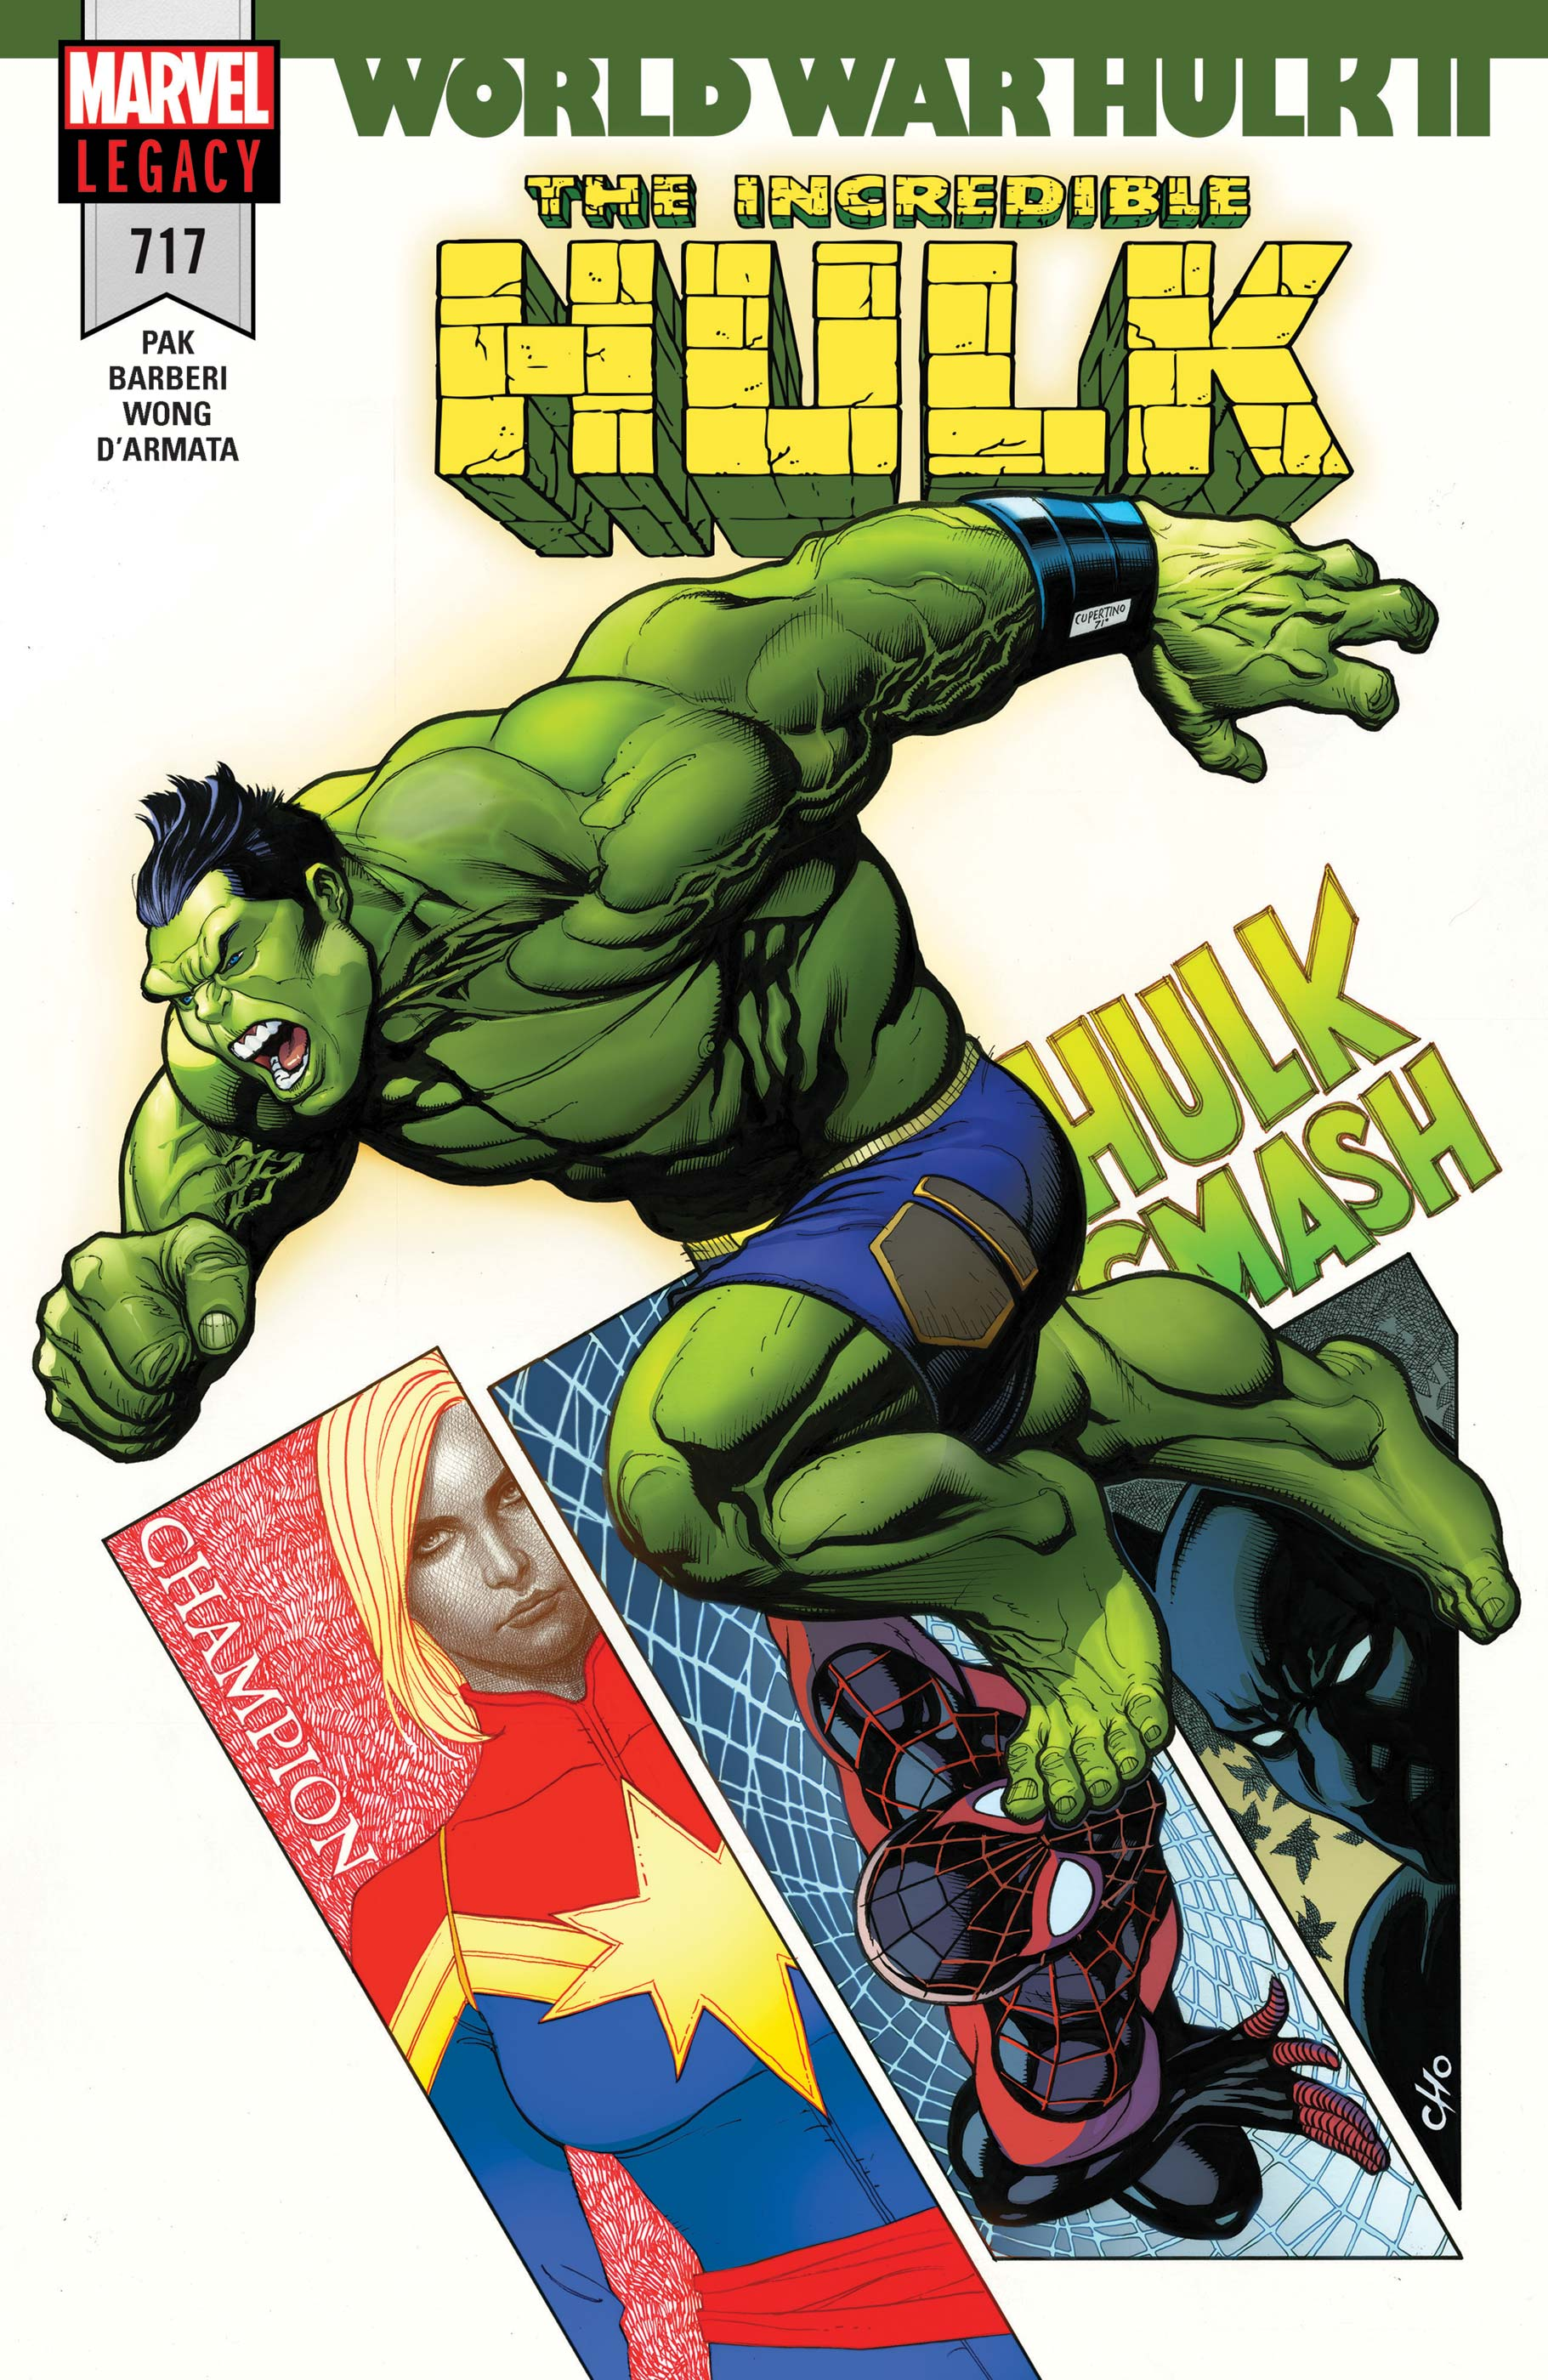 Incredible Hulk (2017) #717